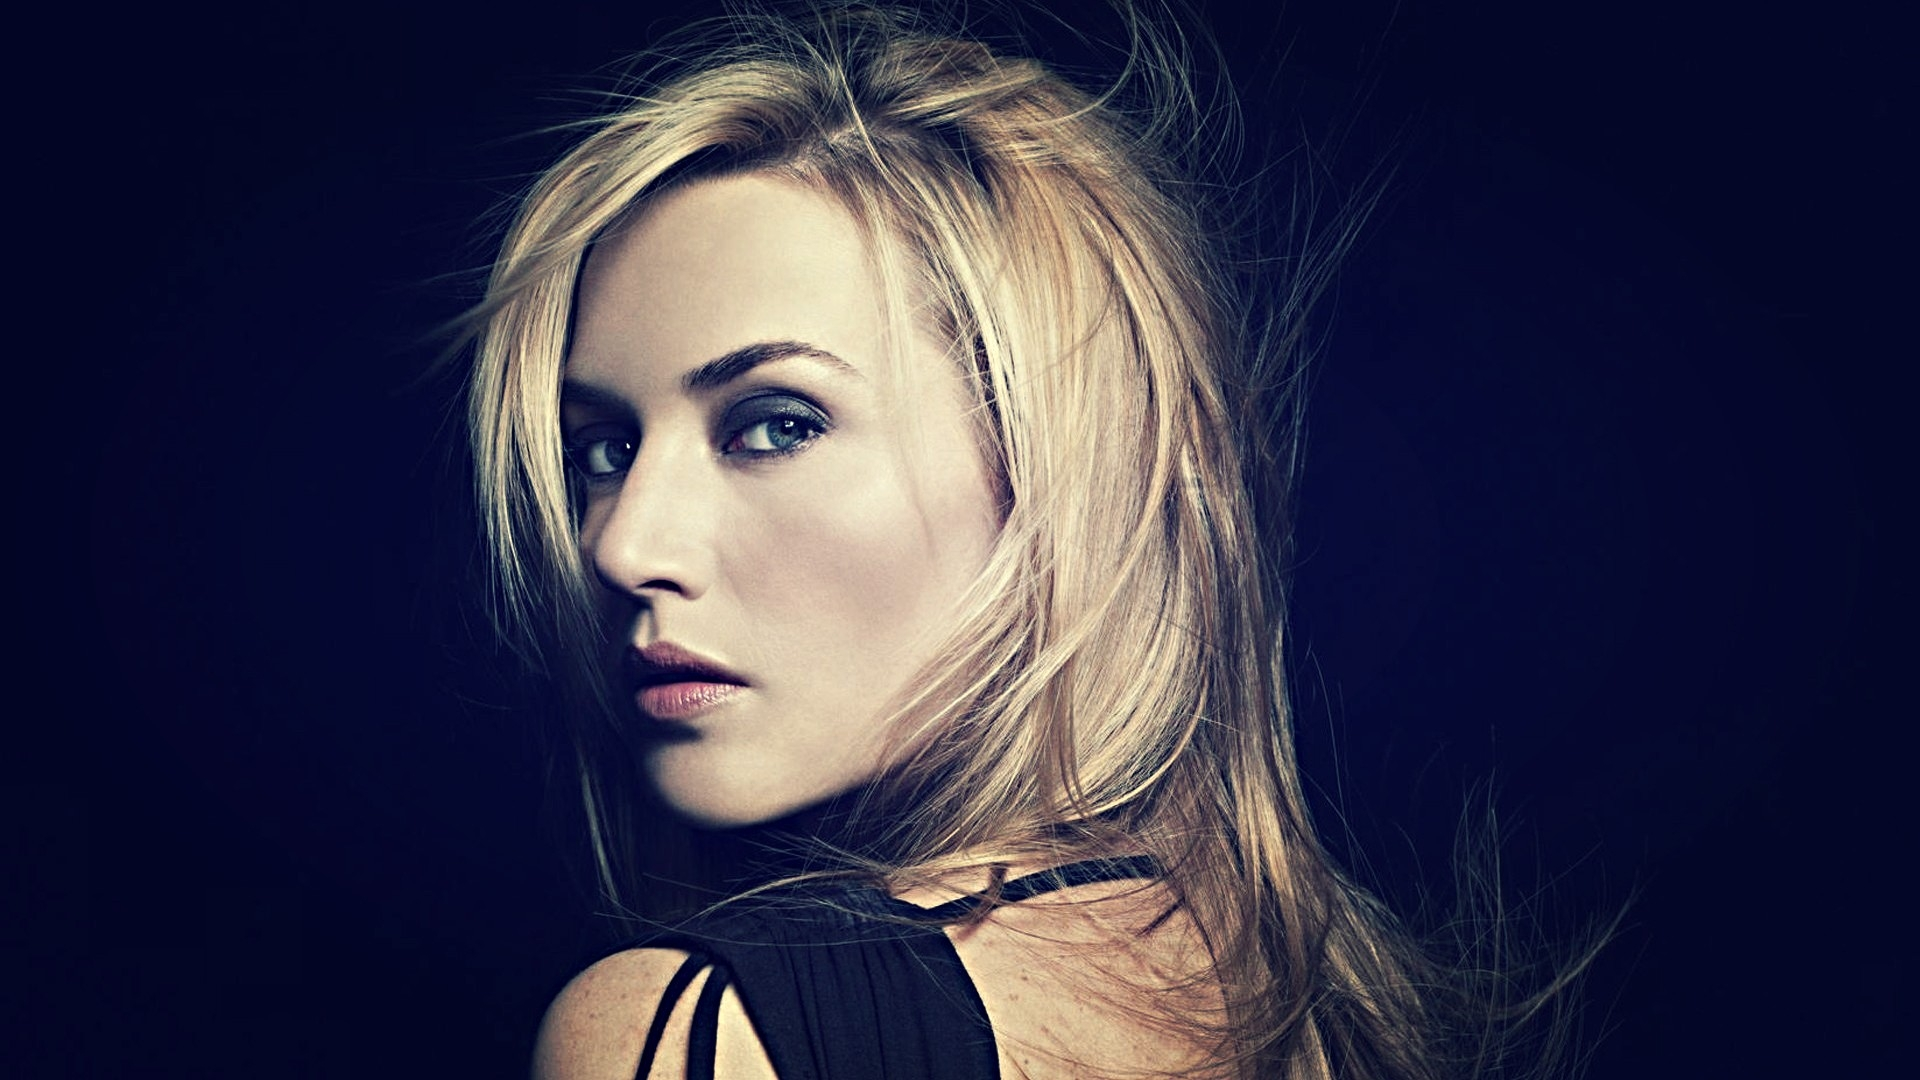 3d Flower Wallpaper For Pc Kate Winslet Wallpapers Pictures Images